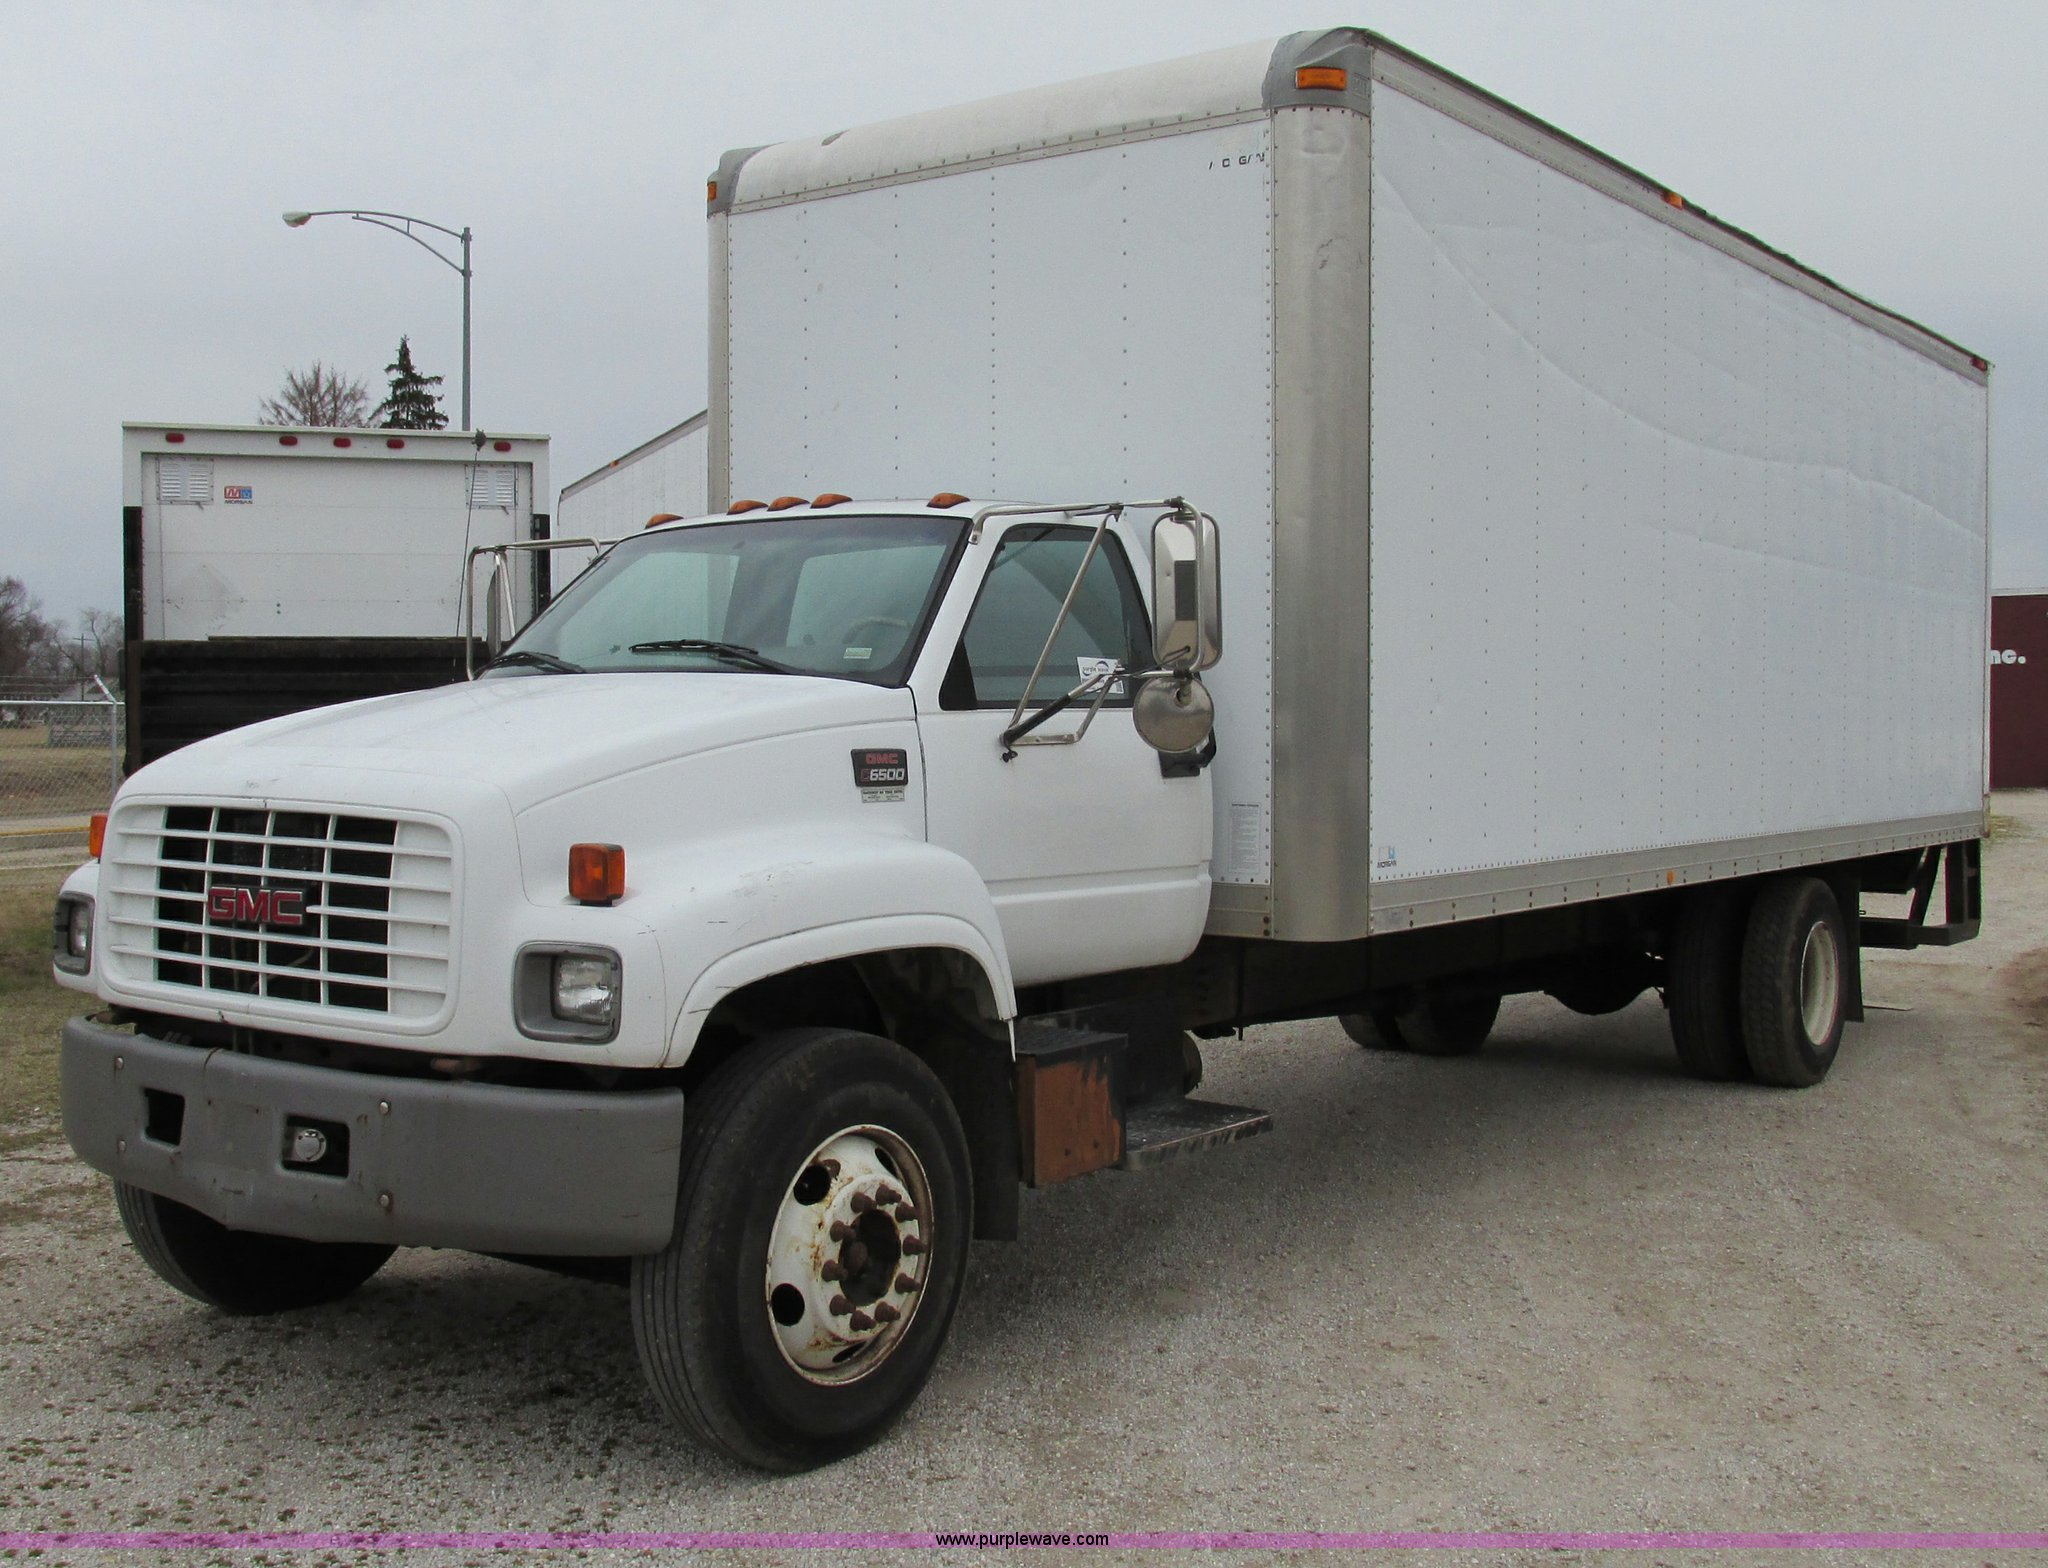 1999 gmc c6500 box truck item f4715 sold! march 6 midwes GMC Dump Truck f4715 image for item f4715 1999 gmc c6500 box truck